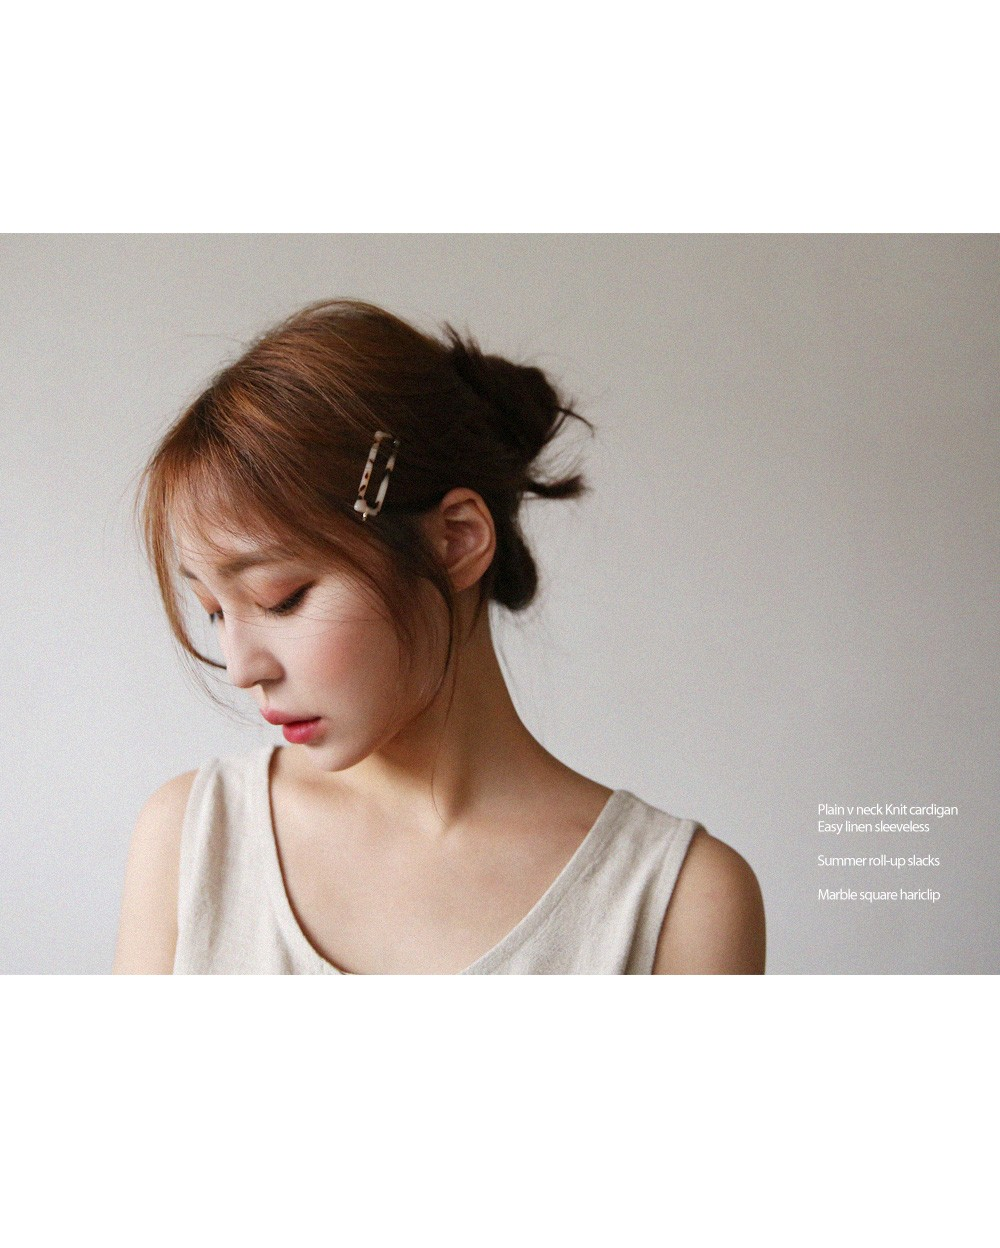 Marble Square Hairpin